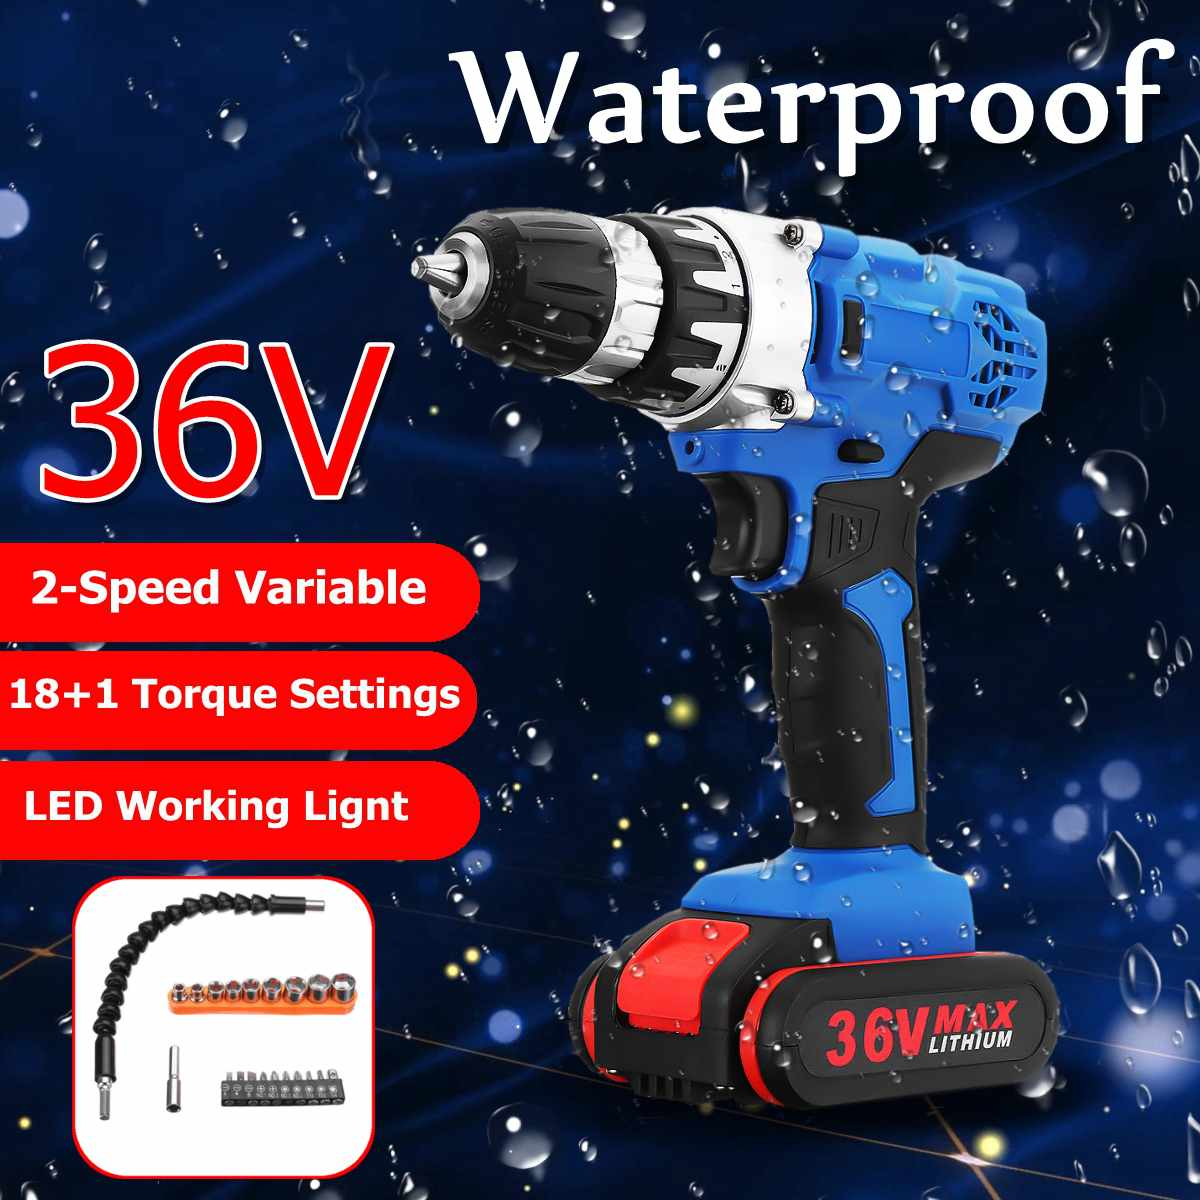 36V Cordless Drill Double-Speed 18+1 Torque Adjustment Electric Screwdriver Power Drills W/ 1/2 Li-Ion Battery Accessories36V Cordless Drill Double-Speed 18+1 Torque Adjustment Electric Screwdriver Power Drills W/ 1/2 Li-Ion Battery Accessories